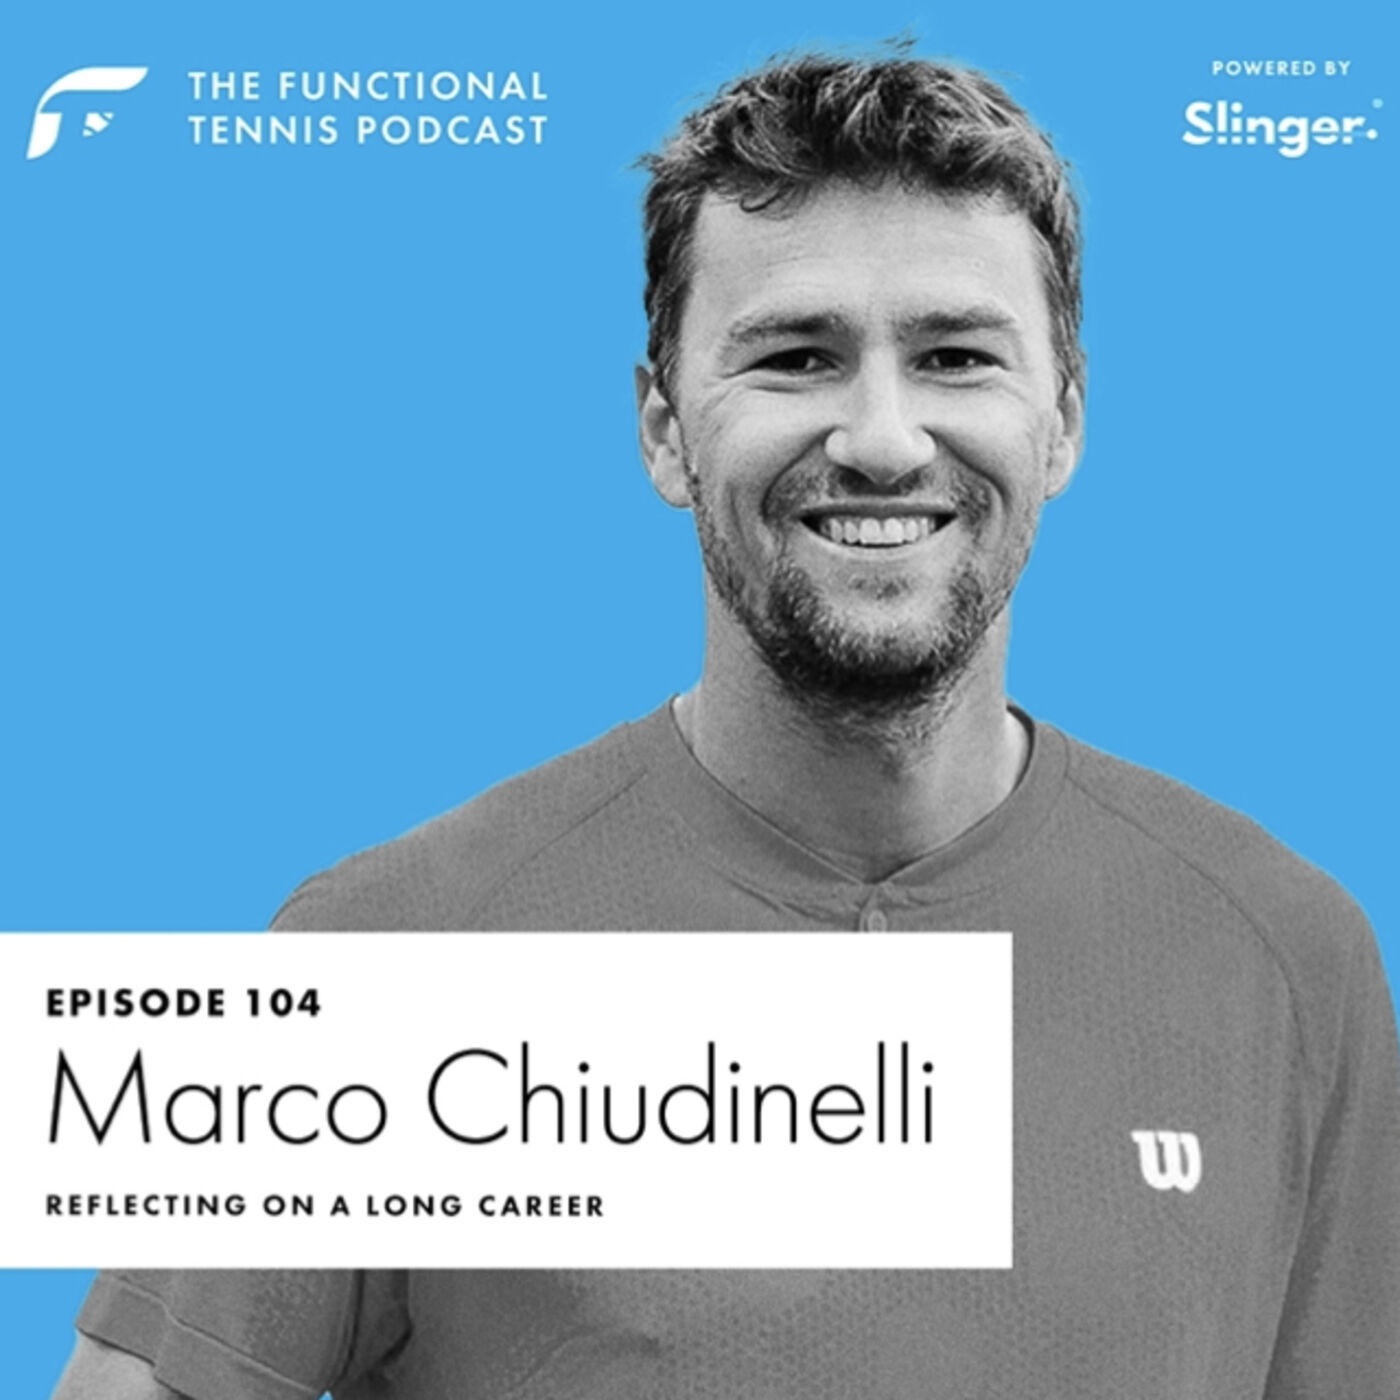 Marco Chiudinelli - Reflecting on a Long Career